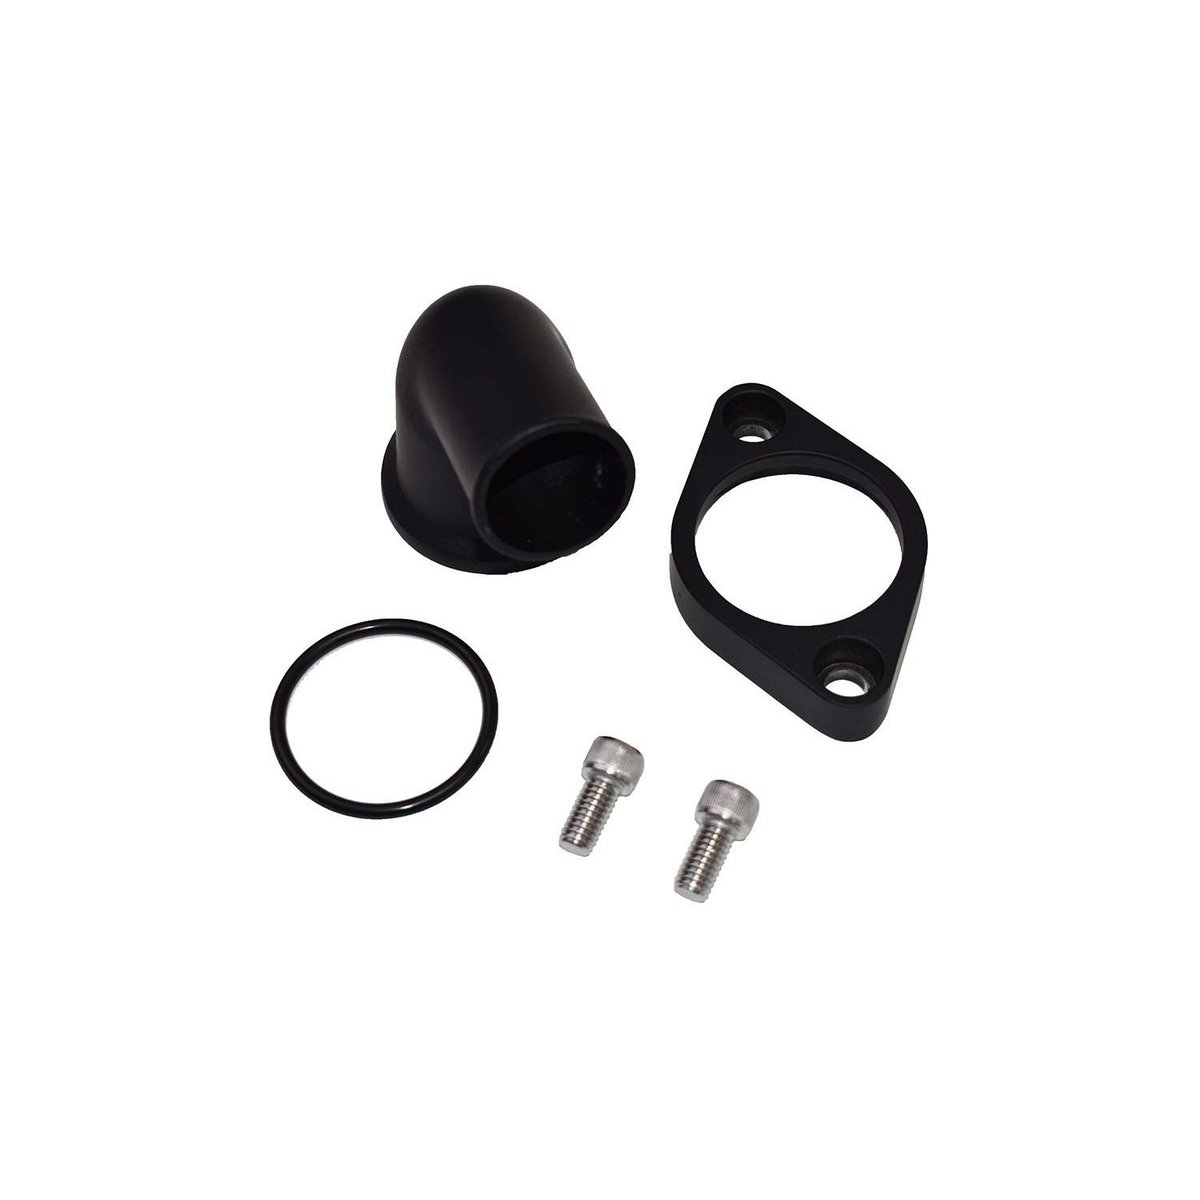 A-Team Performance 15/° Swivel Water Neck Thermostat Housing Compatible With Chevrolet SBC BBC Small Block Big Block Chevy 283 302 305 327 350 383 396 427 454 502 Black